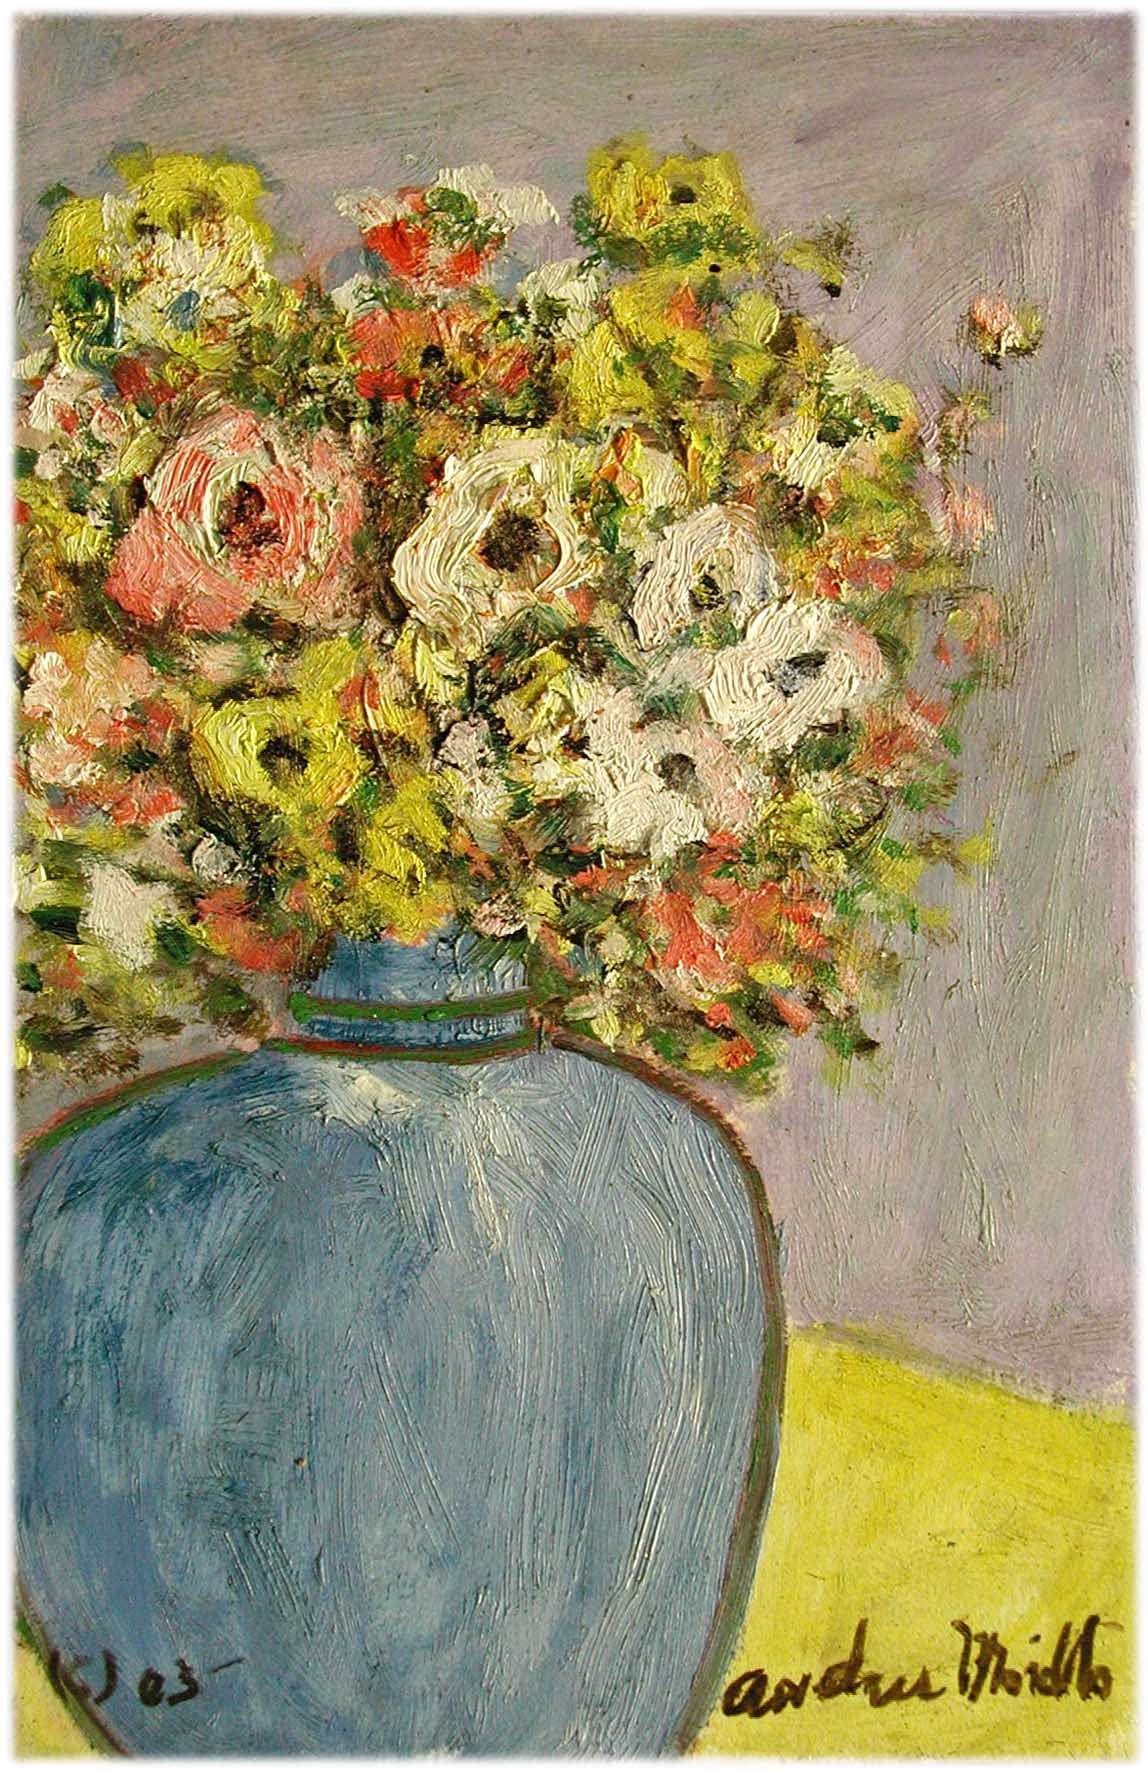 Bouquet of Flowers by  Andres  Morillo - Masterpiece Online